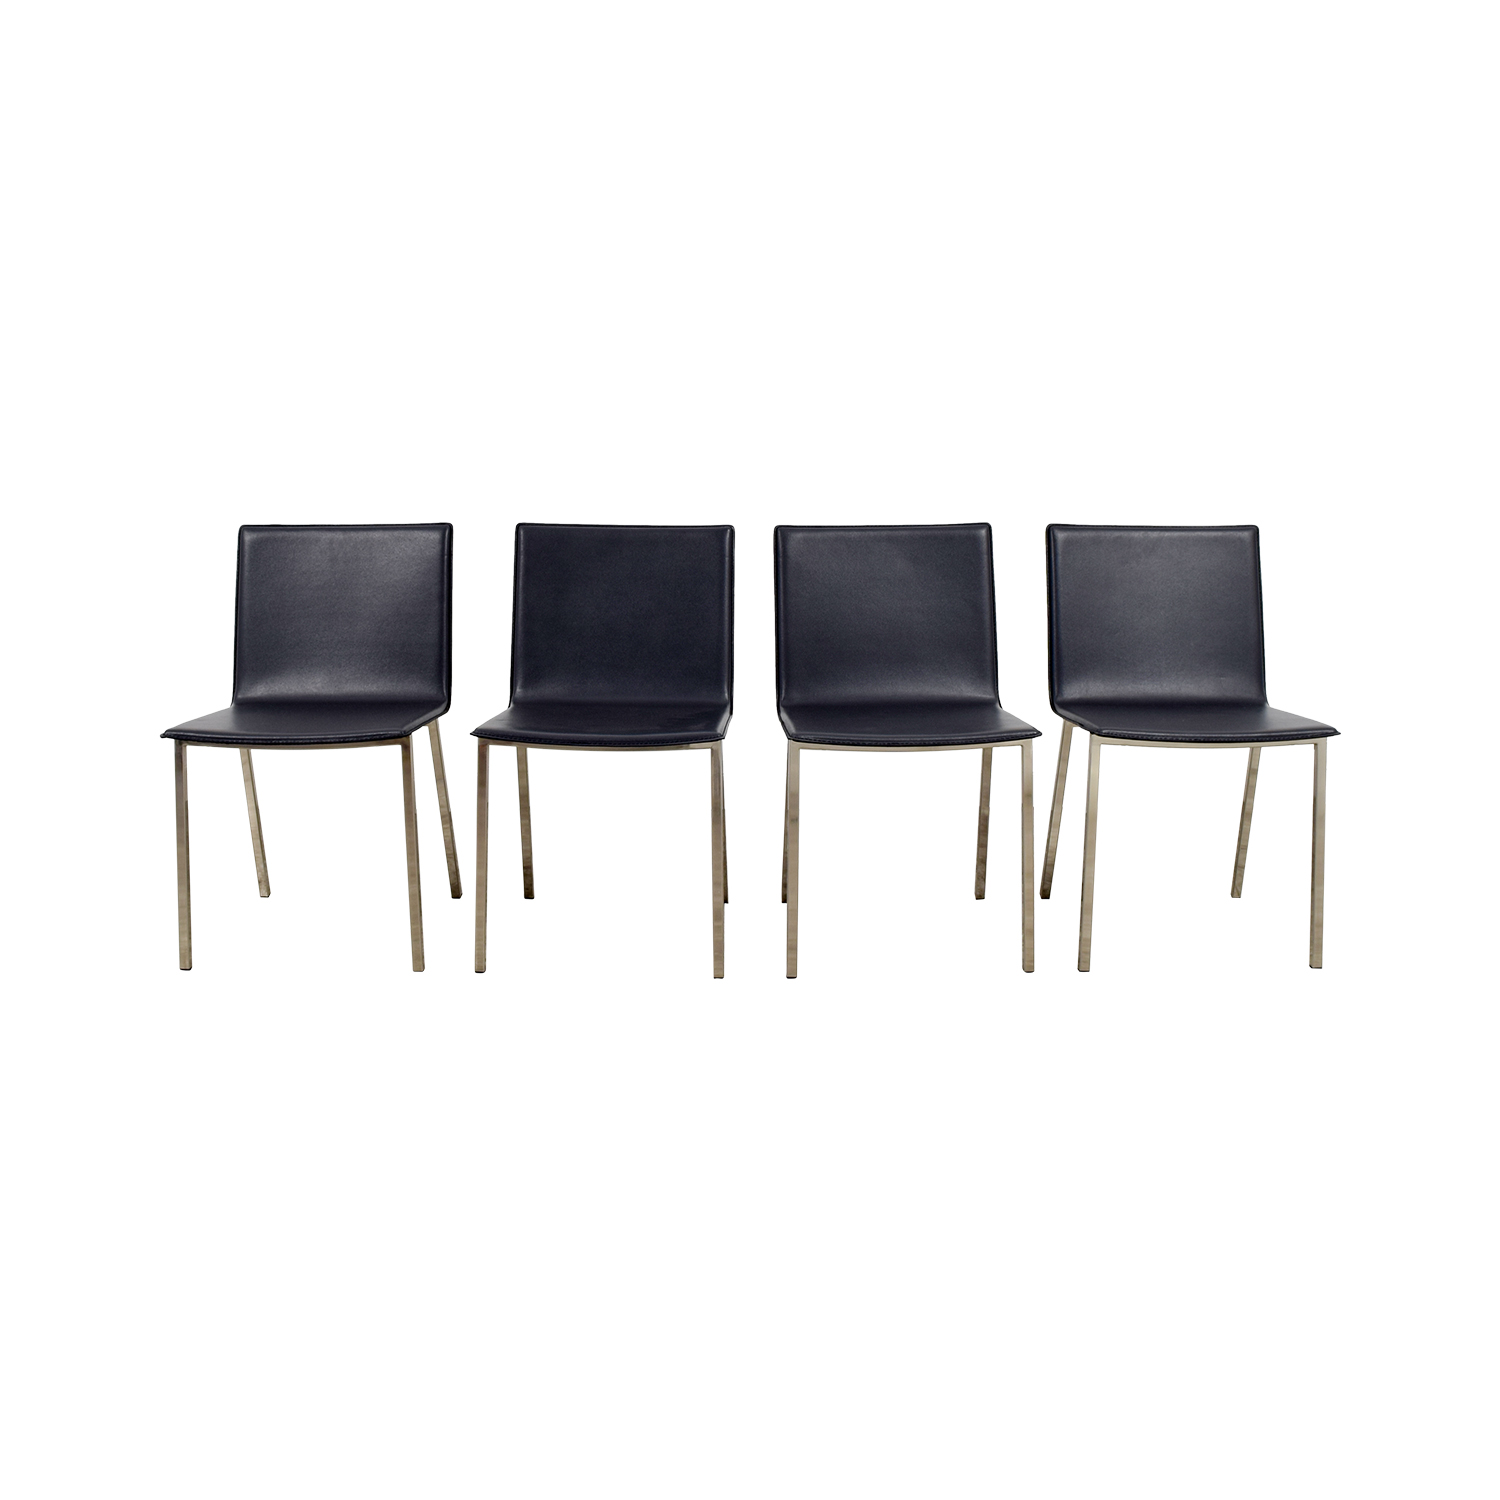 CB2 CB2 Grey Leather Chairs nyc